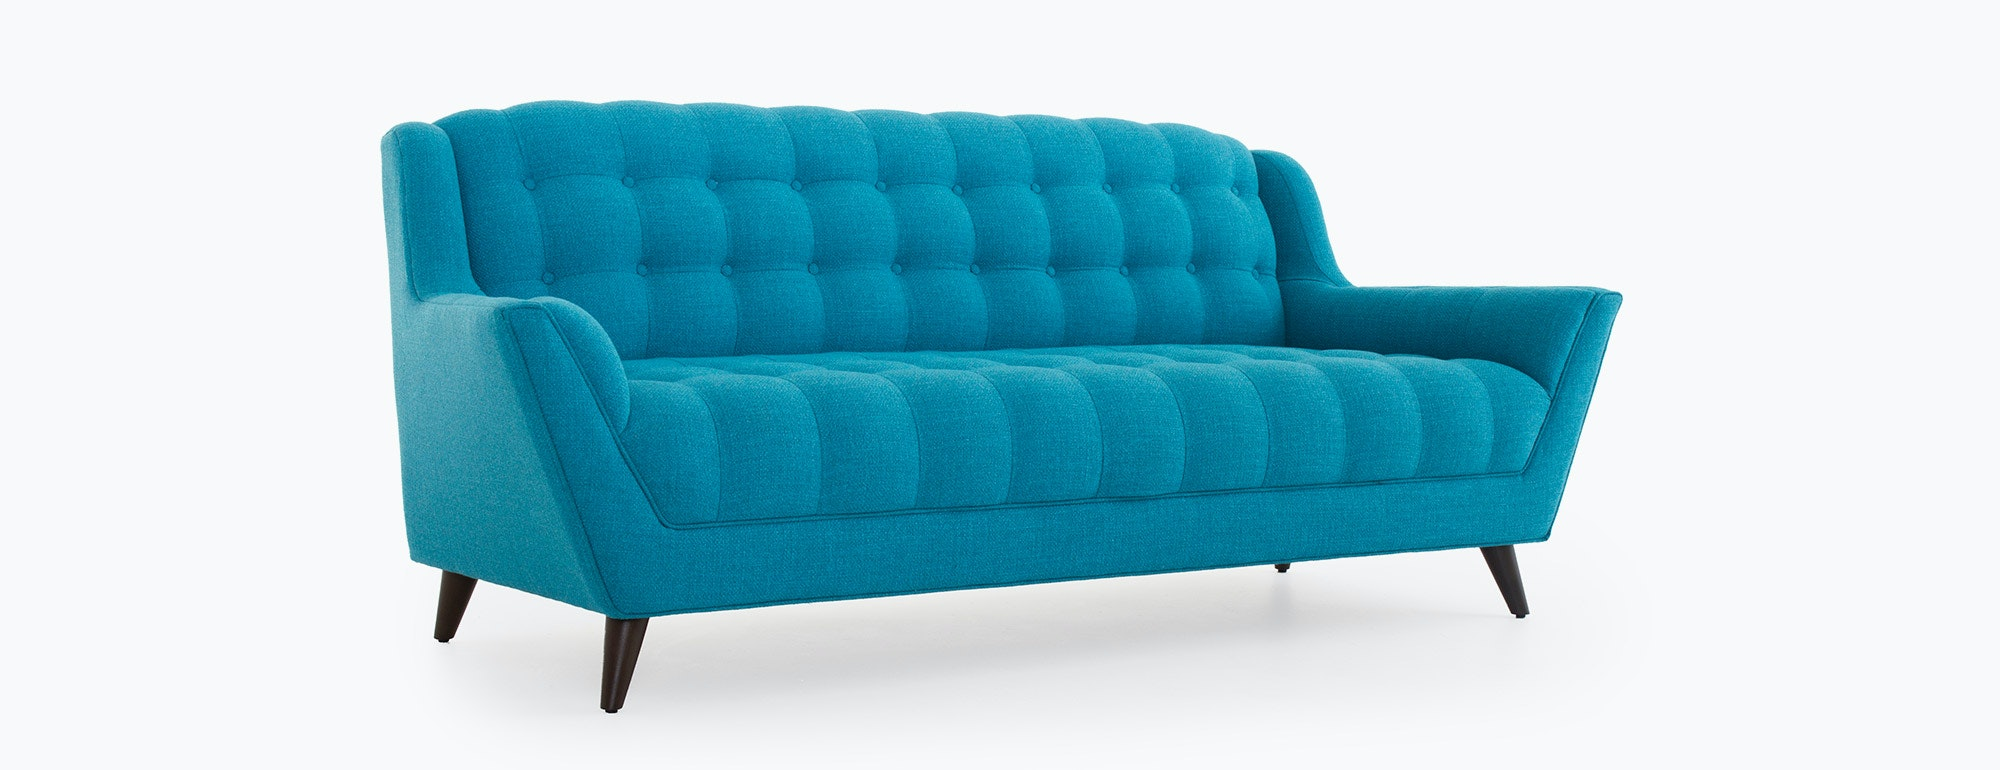 where can i donate my sofa stretch covers fitzgerald joybird